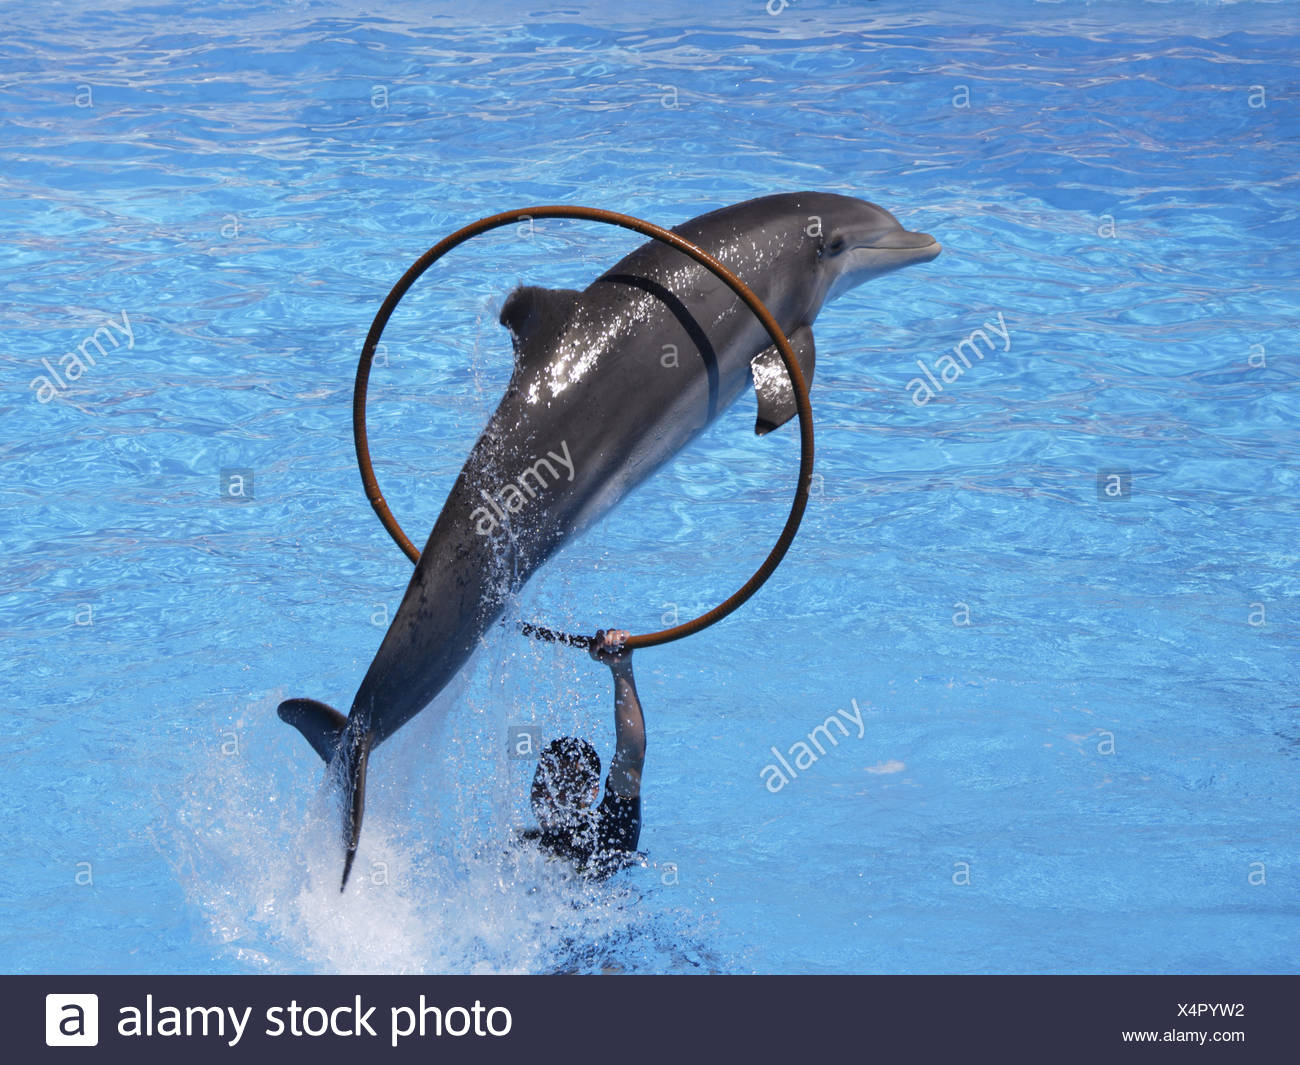 Bottlenose dolphin jumping through hoop, Loro Parque, Tenerife, Canary Islands, Spain - Stock Image